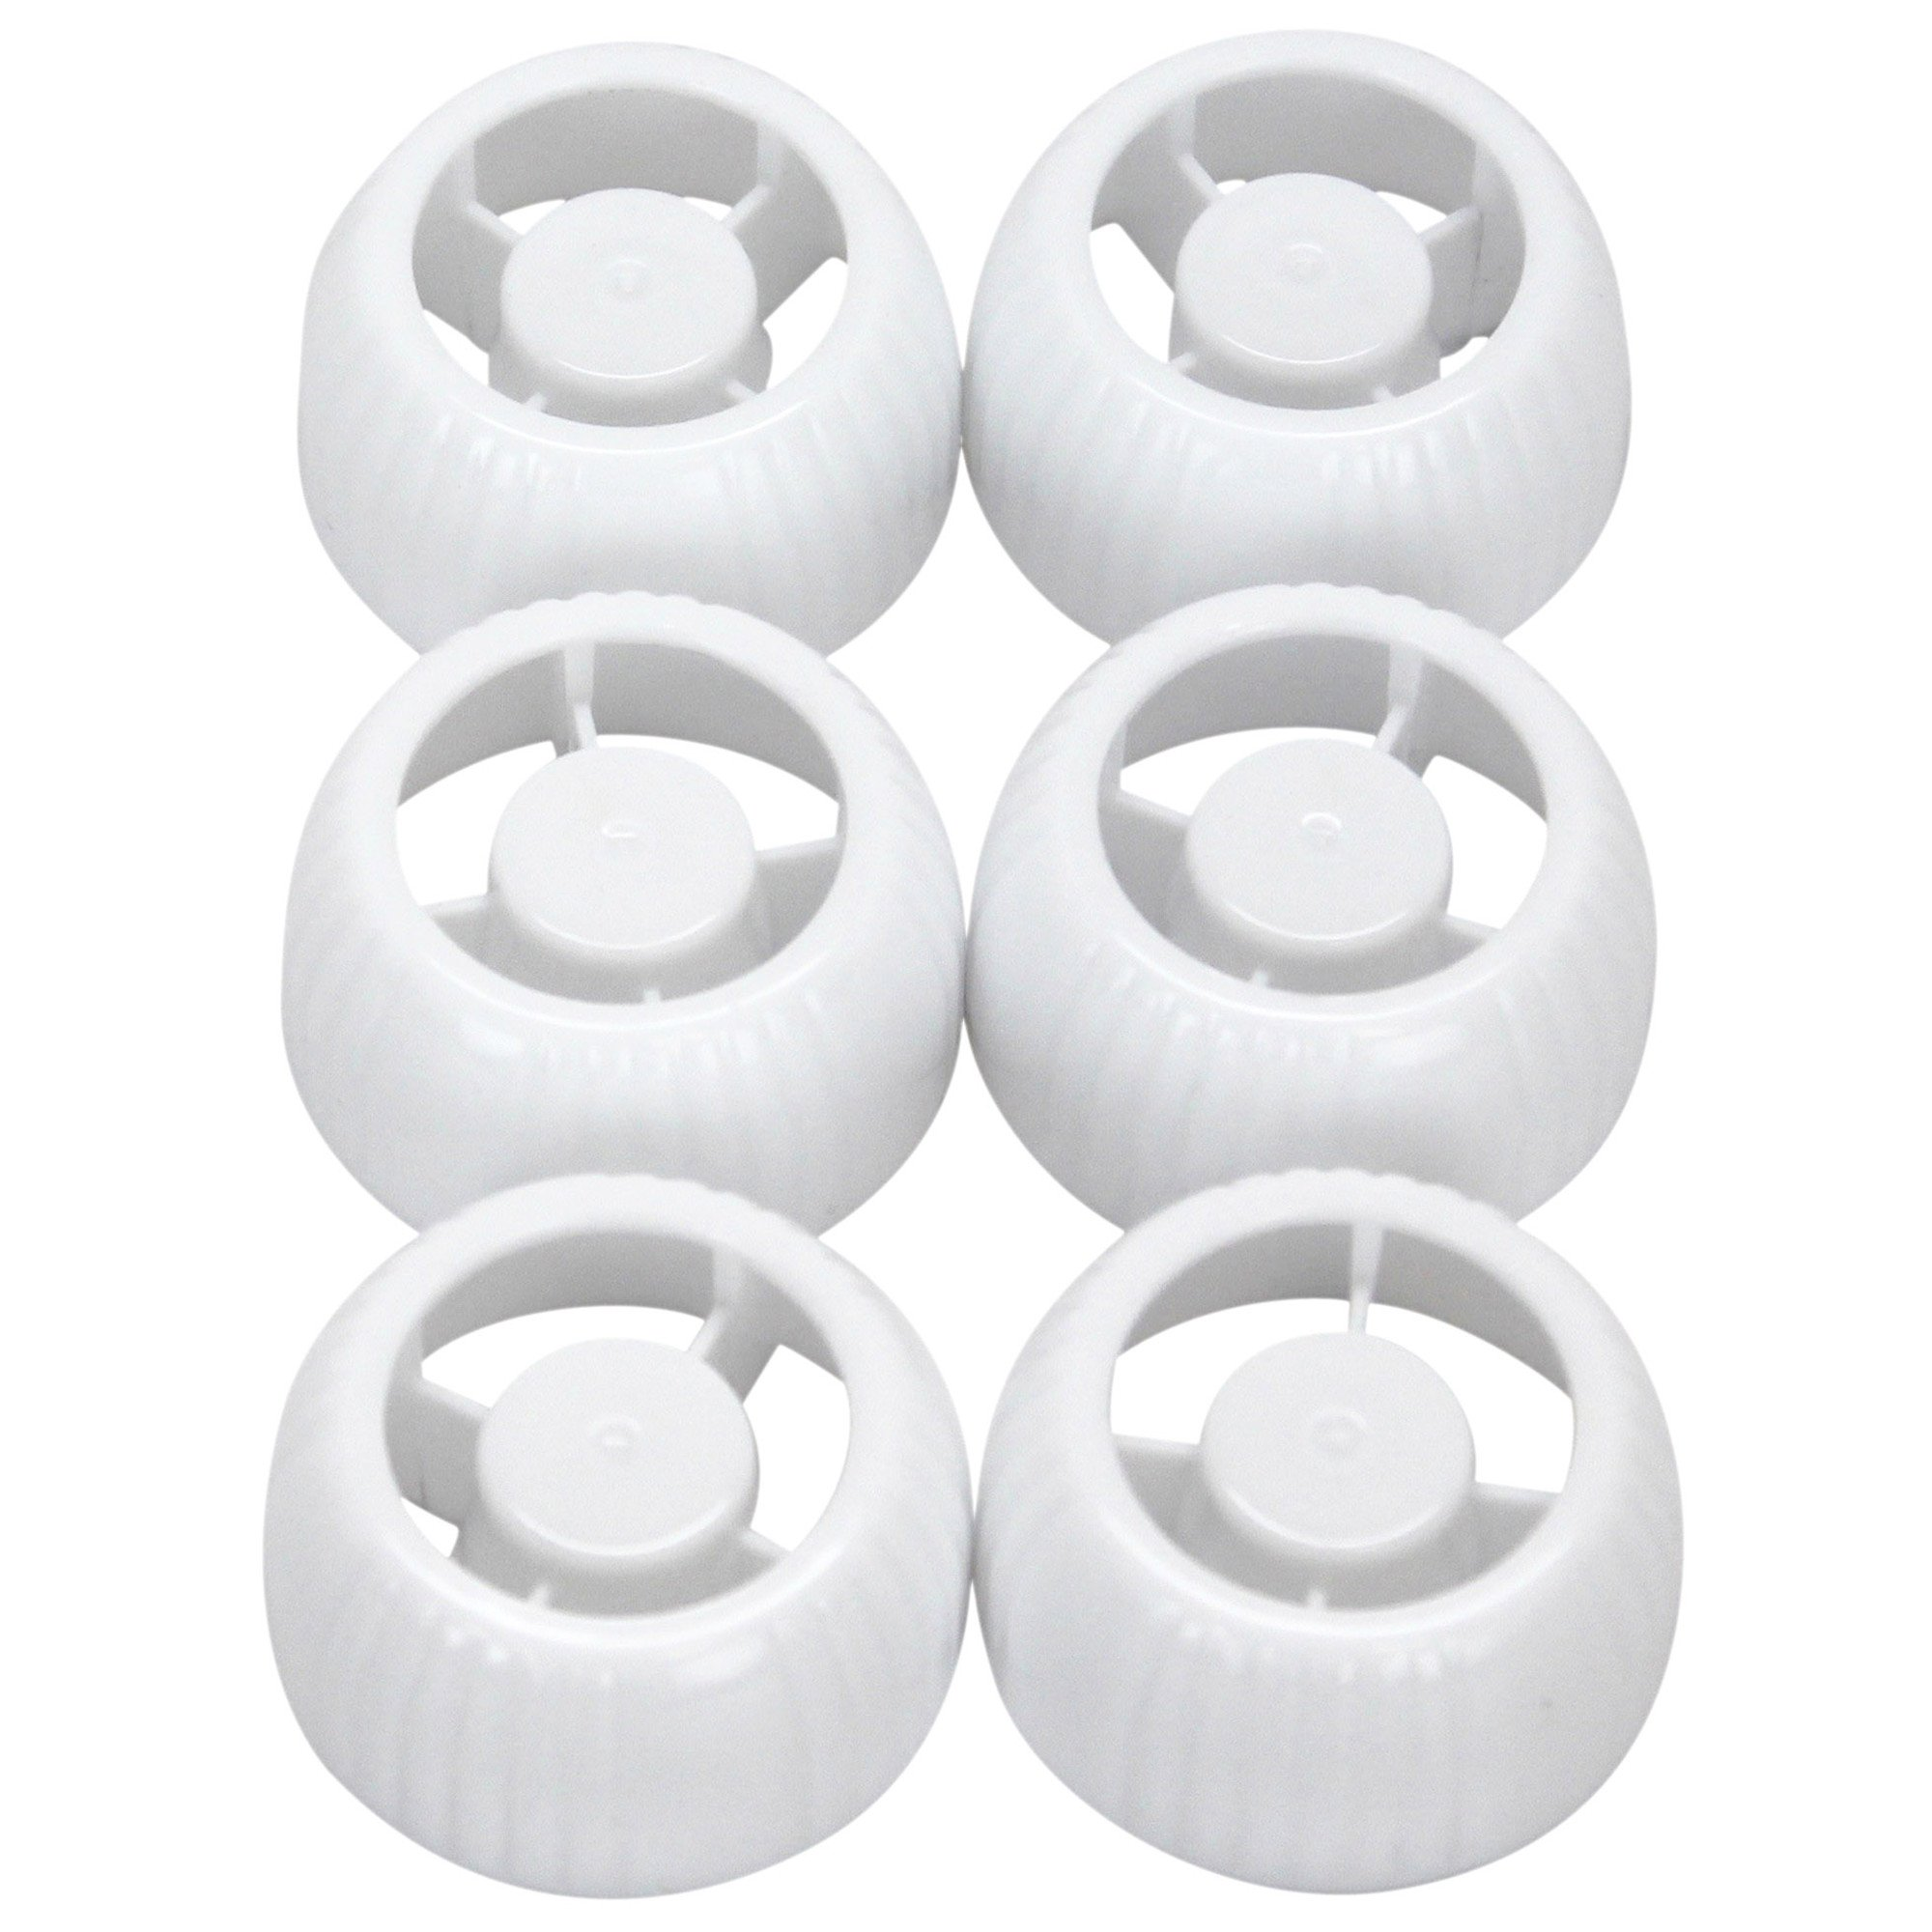 WeeSprout Replacement Caps for Reusable Food Pouches, 6 Count